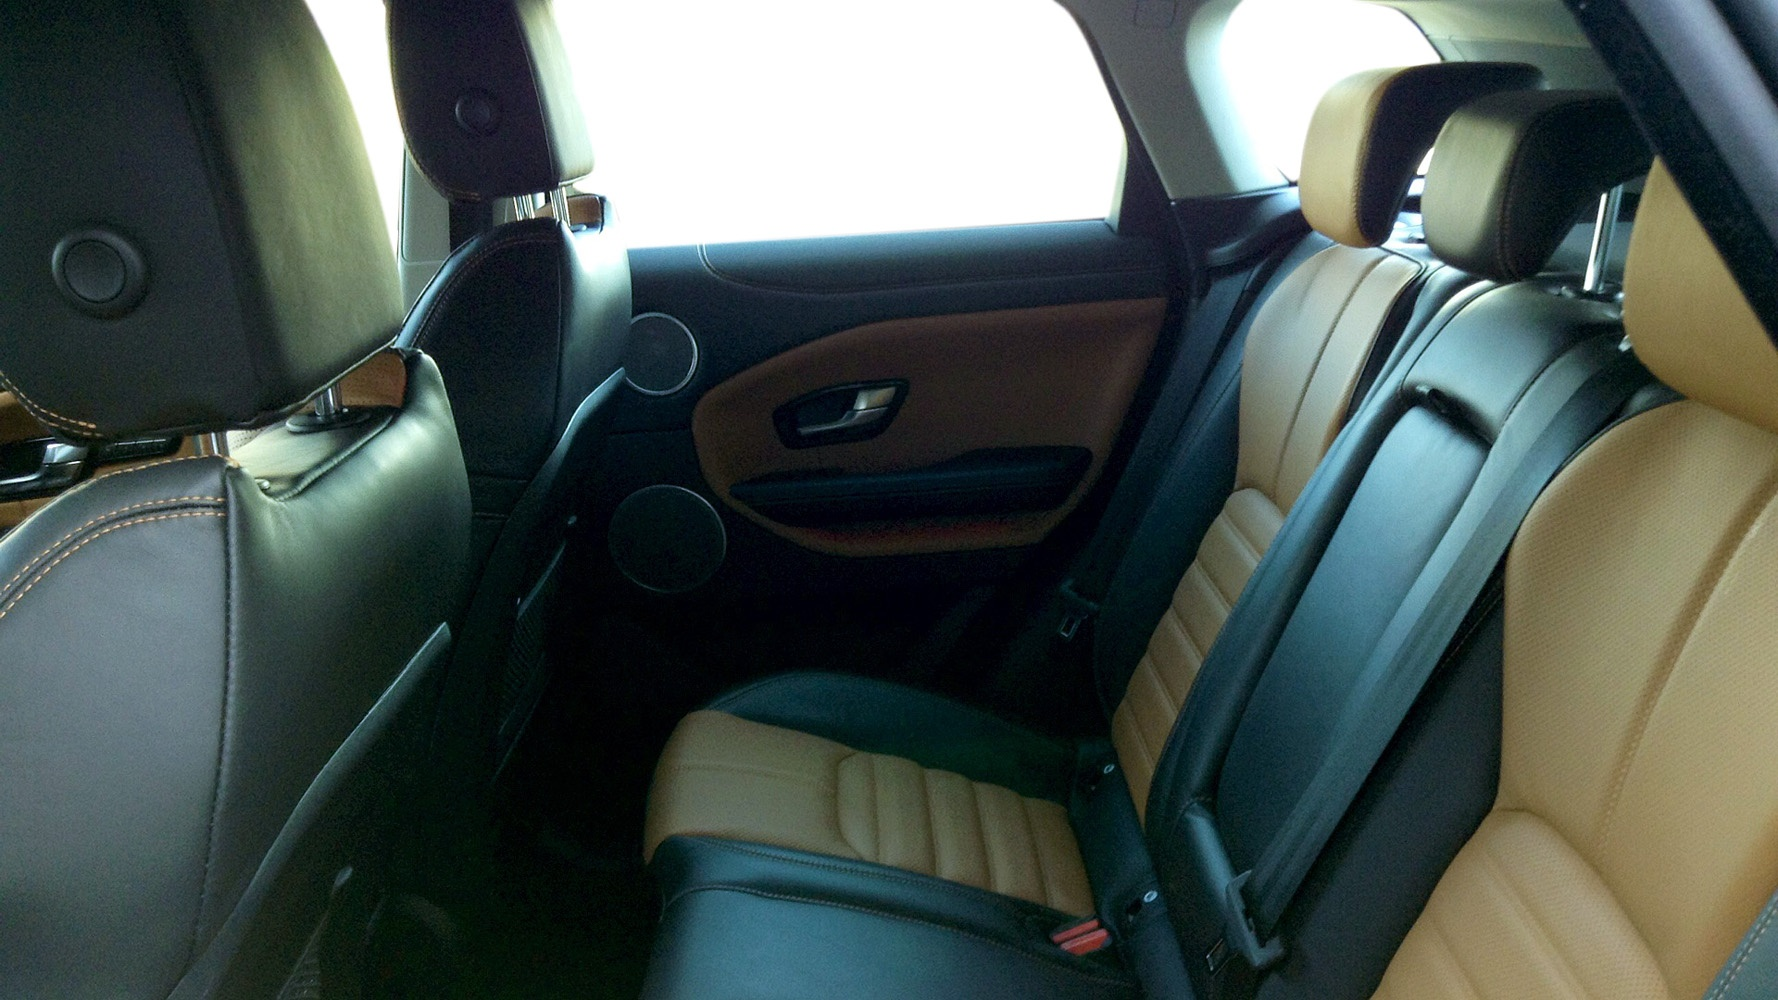 Used corris grey land rover range rover sport for sale surrey - Thumbnail 4